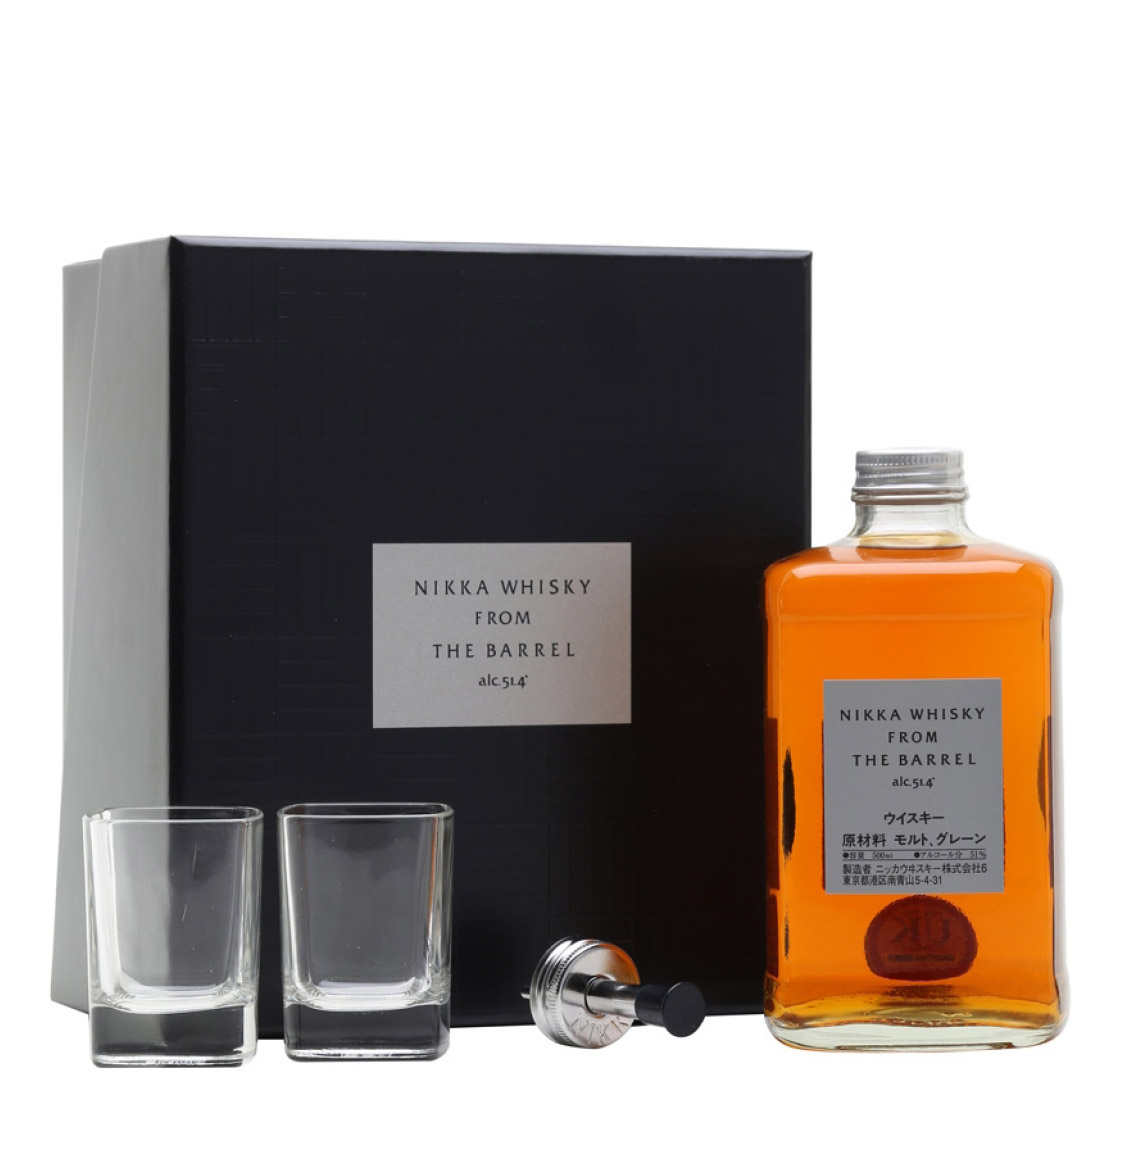 Nikka Whisky From the Barrel 500ml Gift Pack